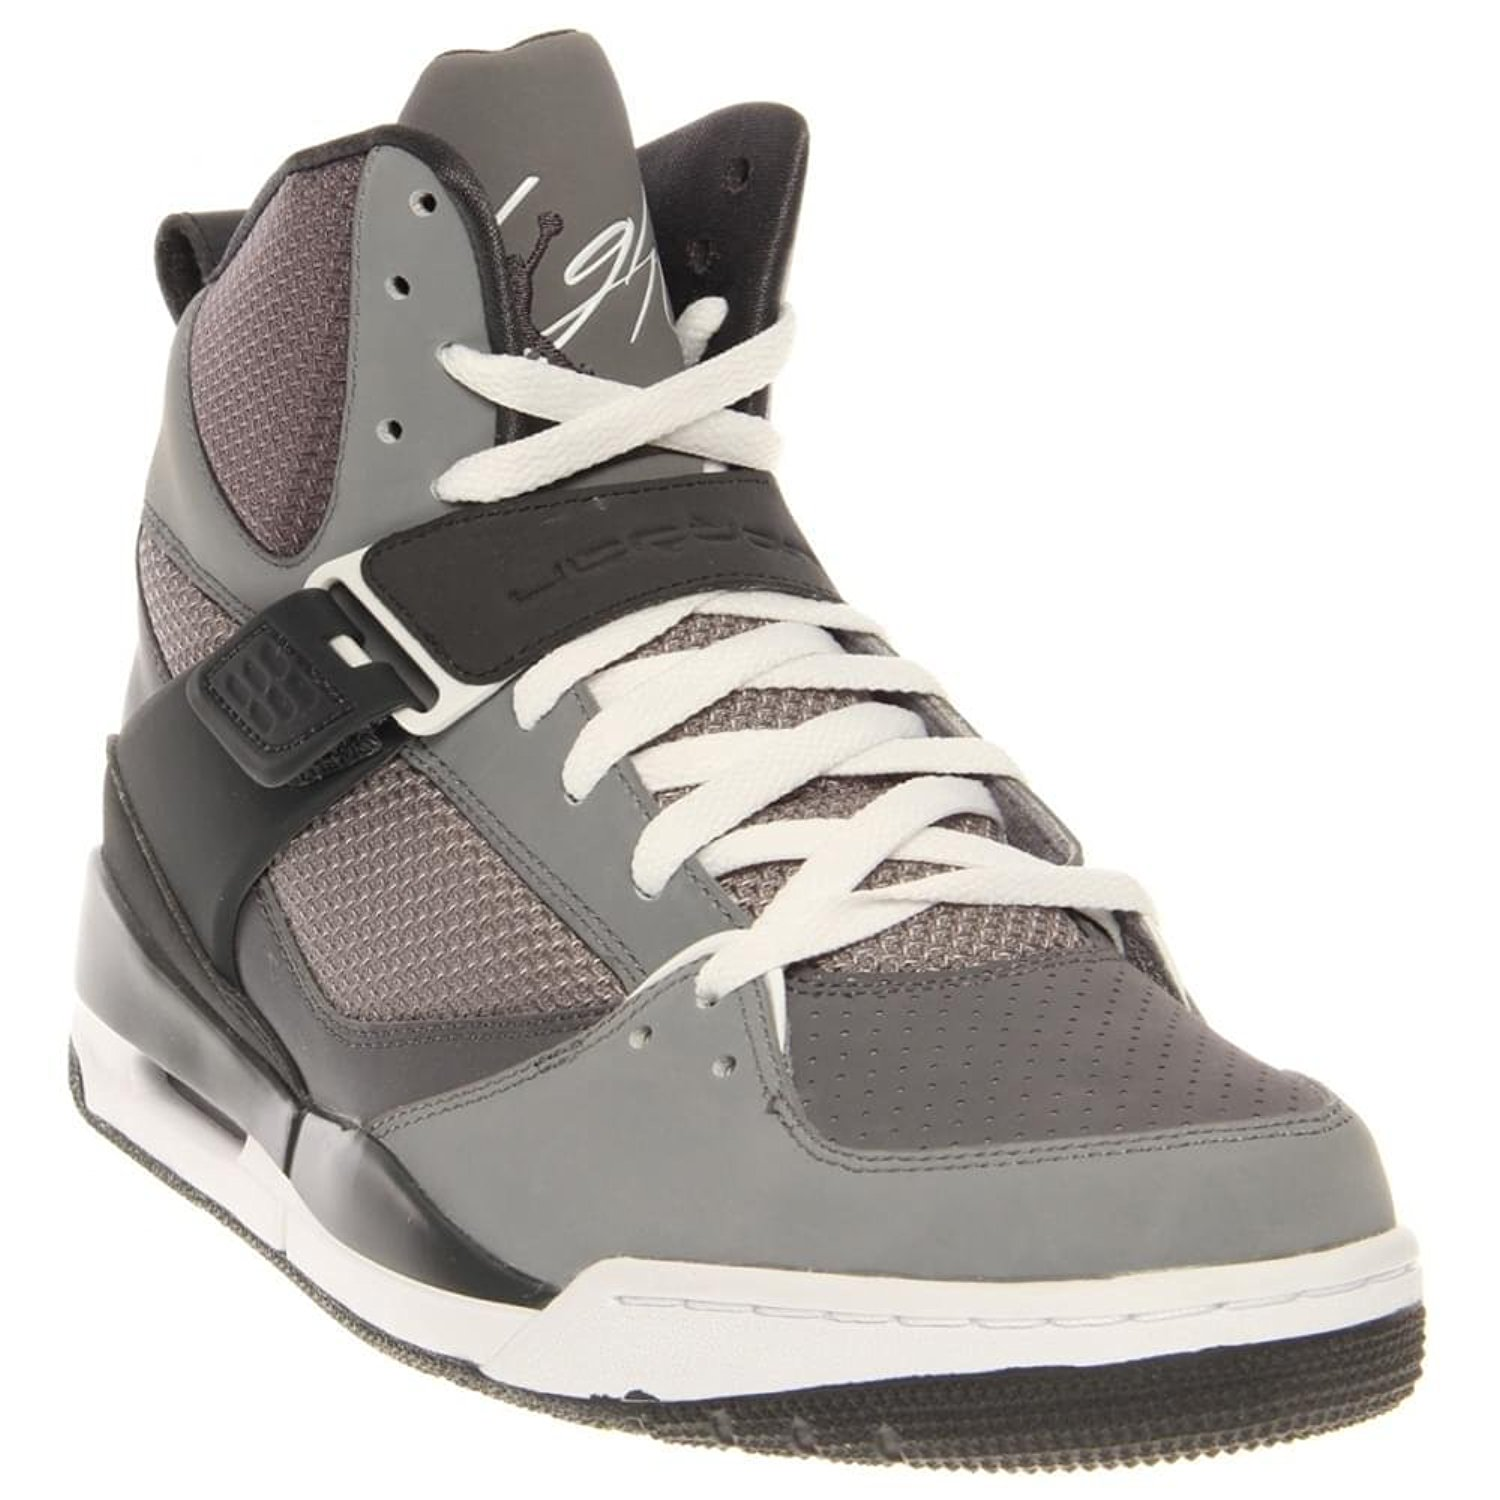 a5640a412d664 Buy Nike Jordan Flight 45 High Men Shoes Sneakers Color: Cool Grey ...